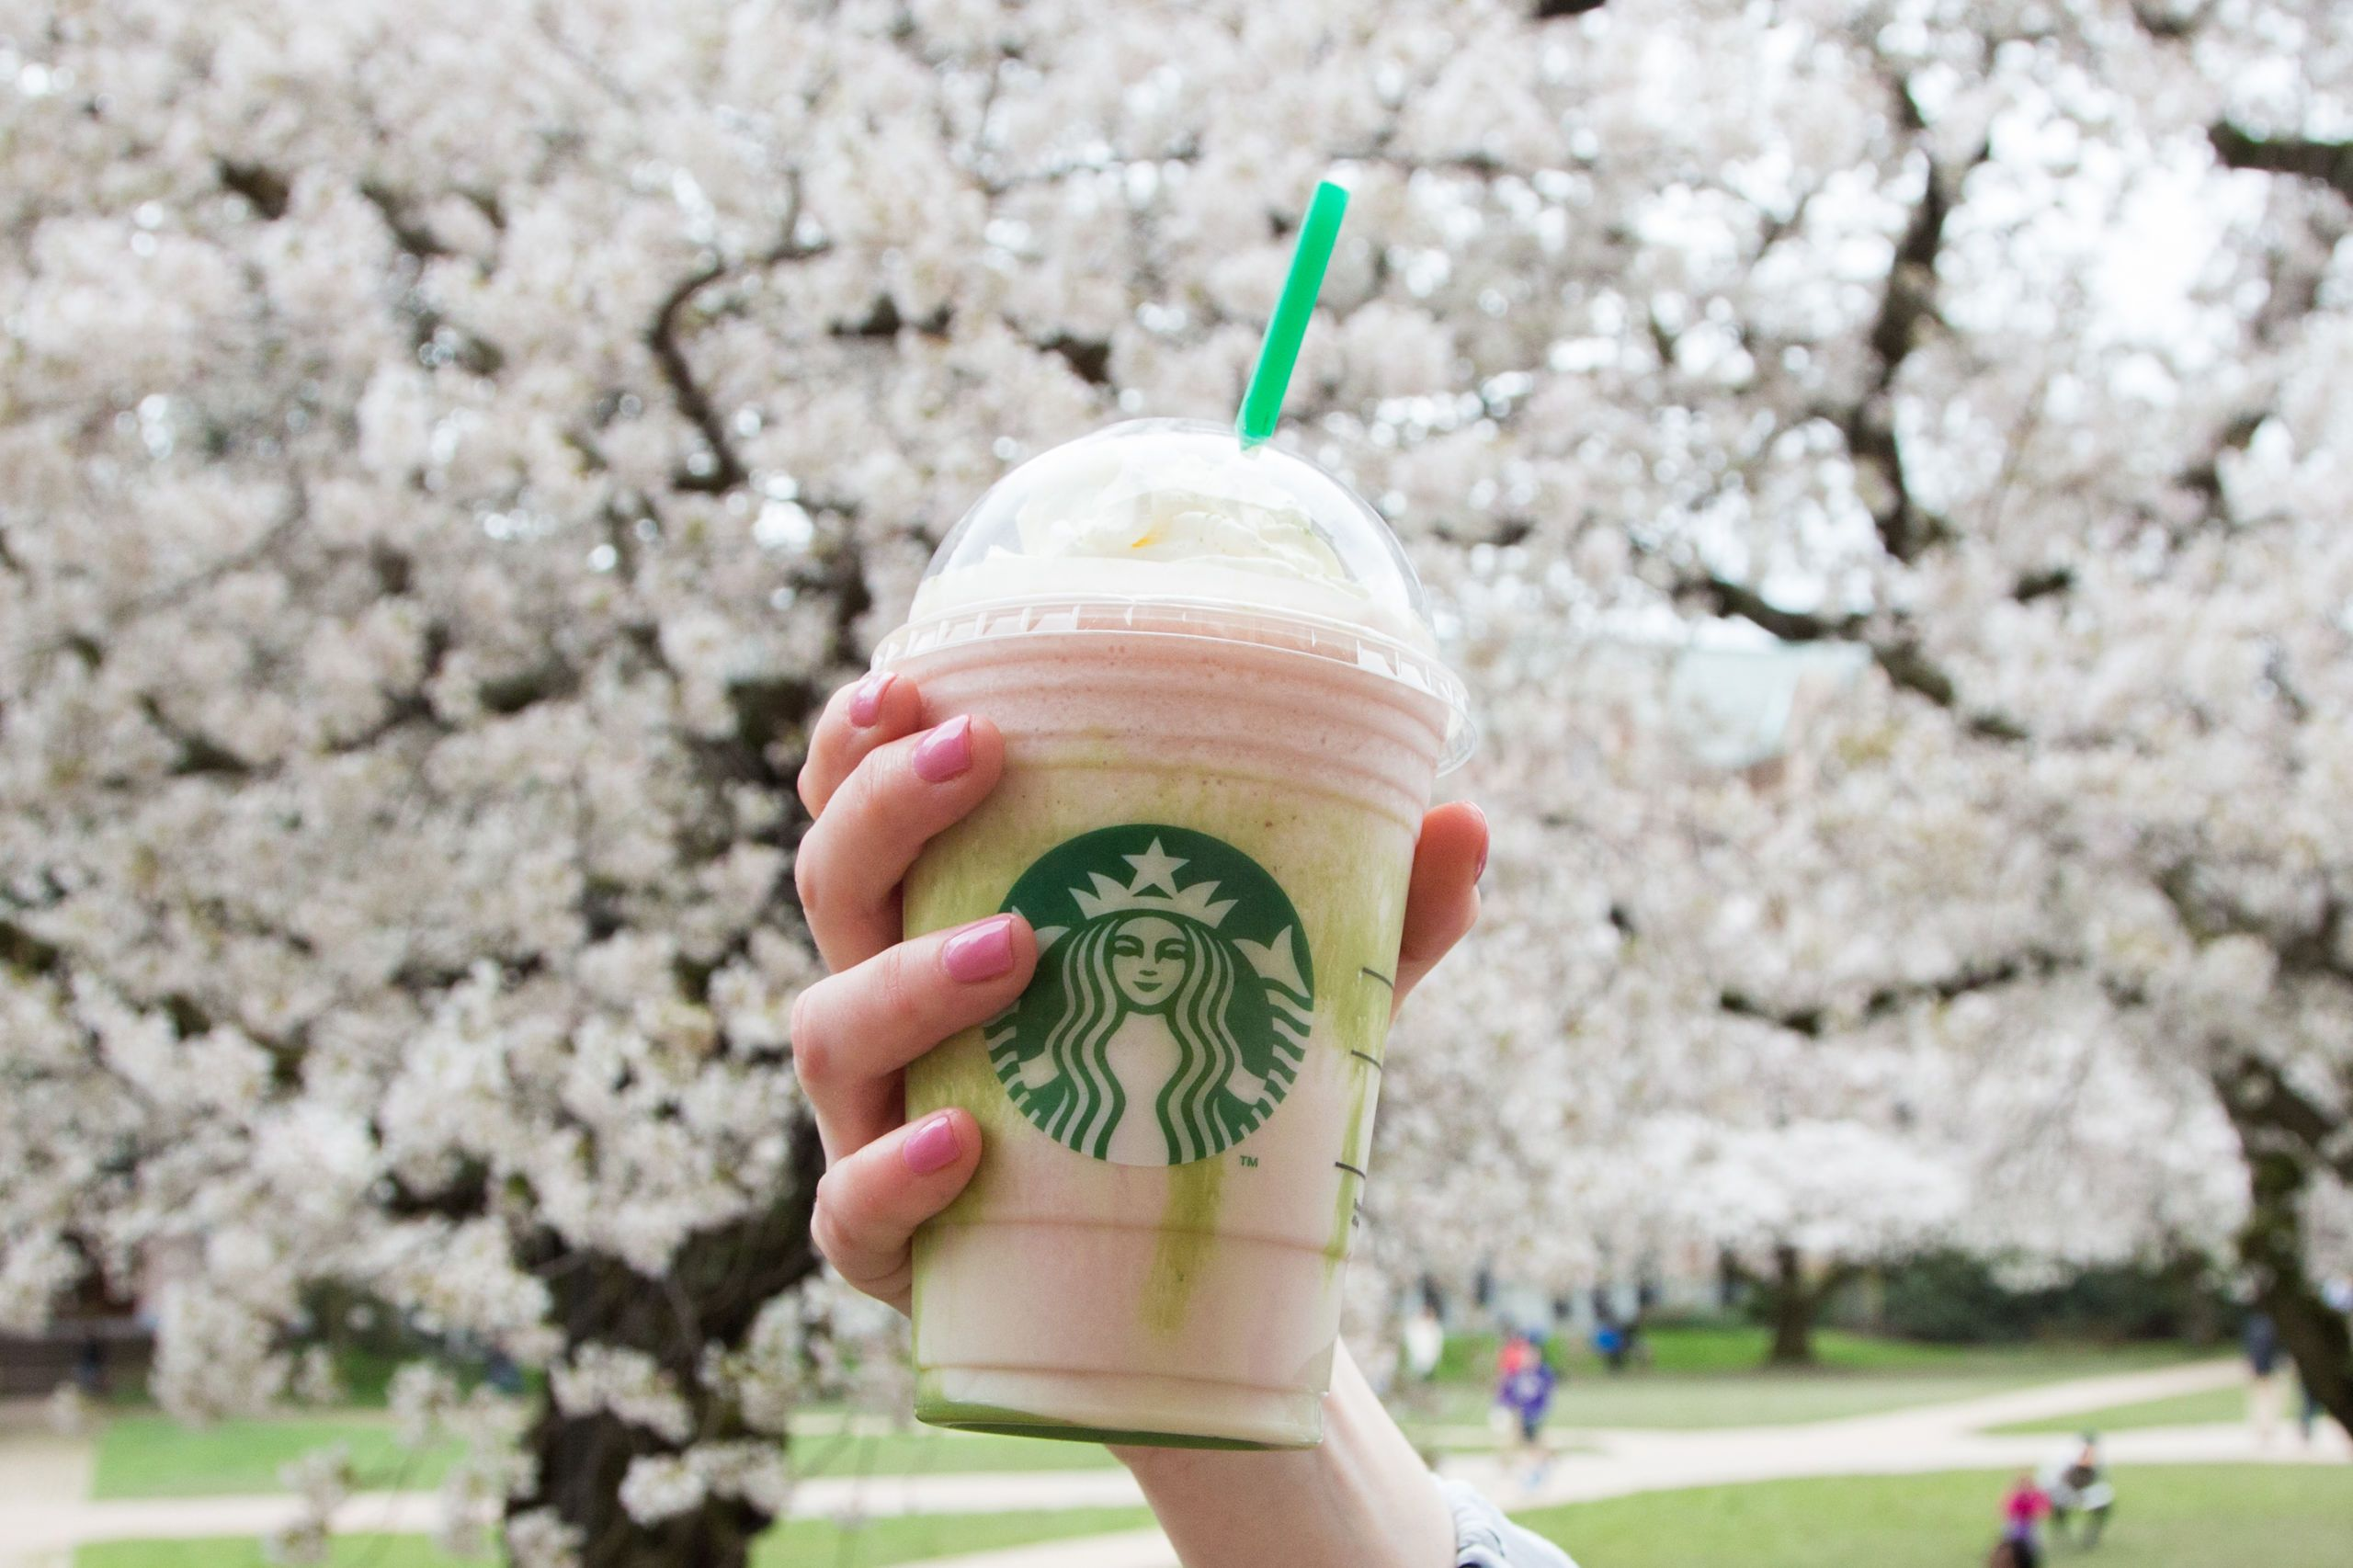 Starbucks Releases a Totally New Frappuccino That's Only Available This Week